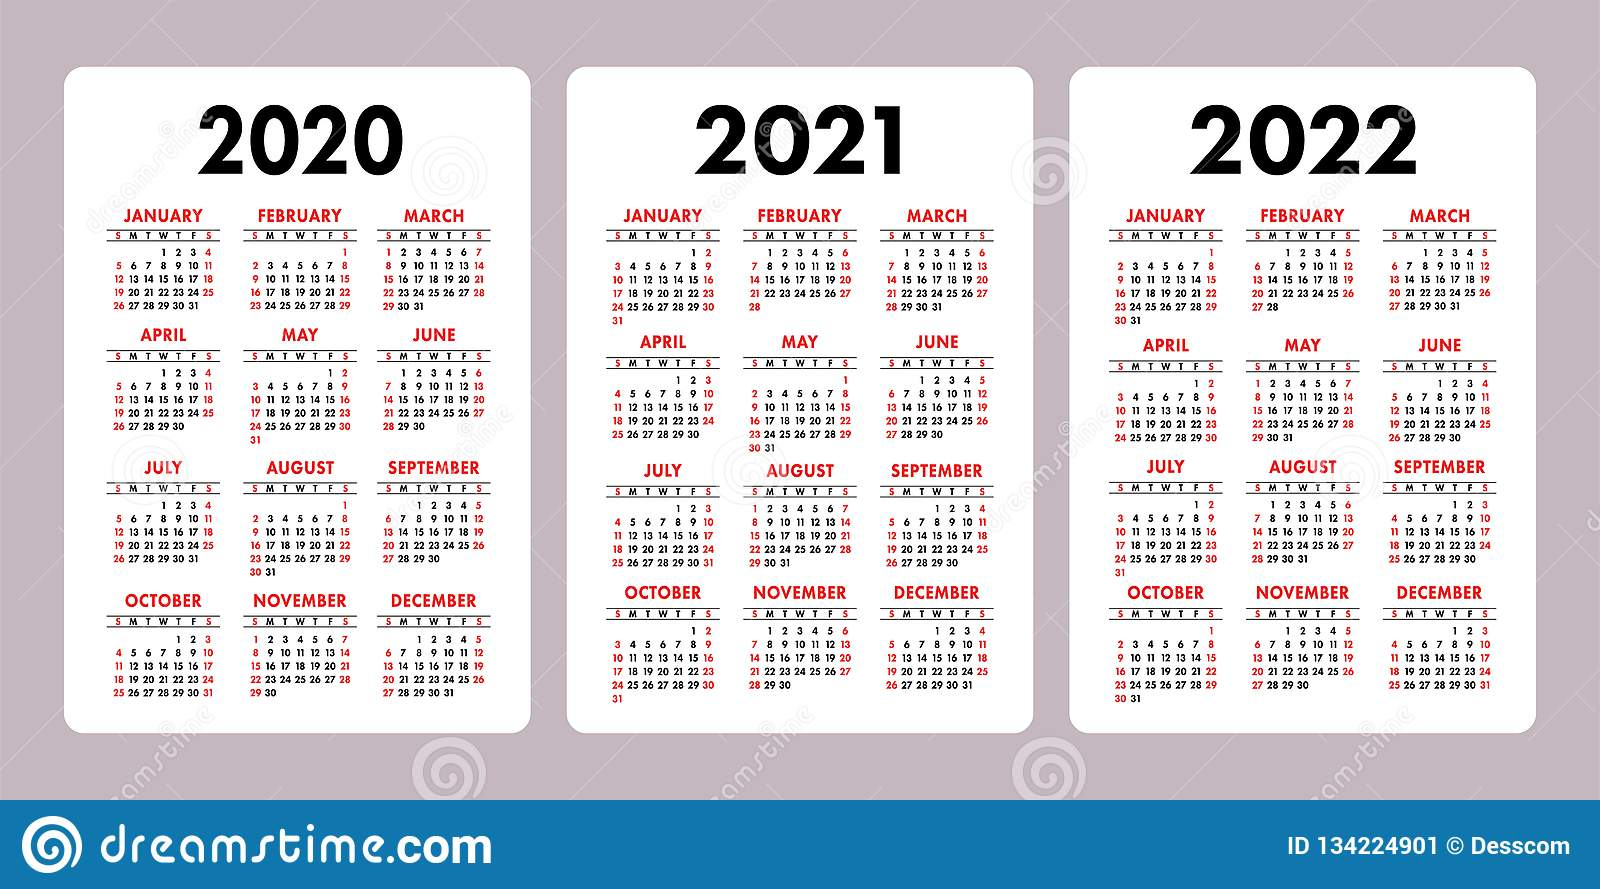 Календарь 2020, 2021, 2022 Лет Вертикальный Шаблон Дизайна throughout Three Year Calendar 2020 2021 2022